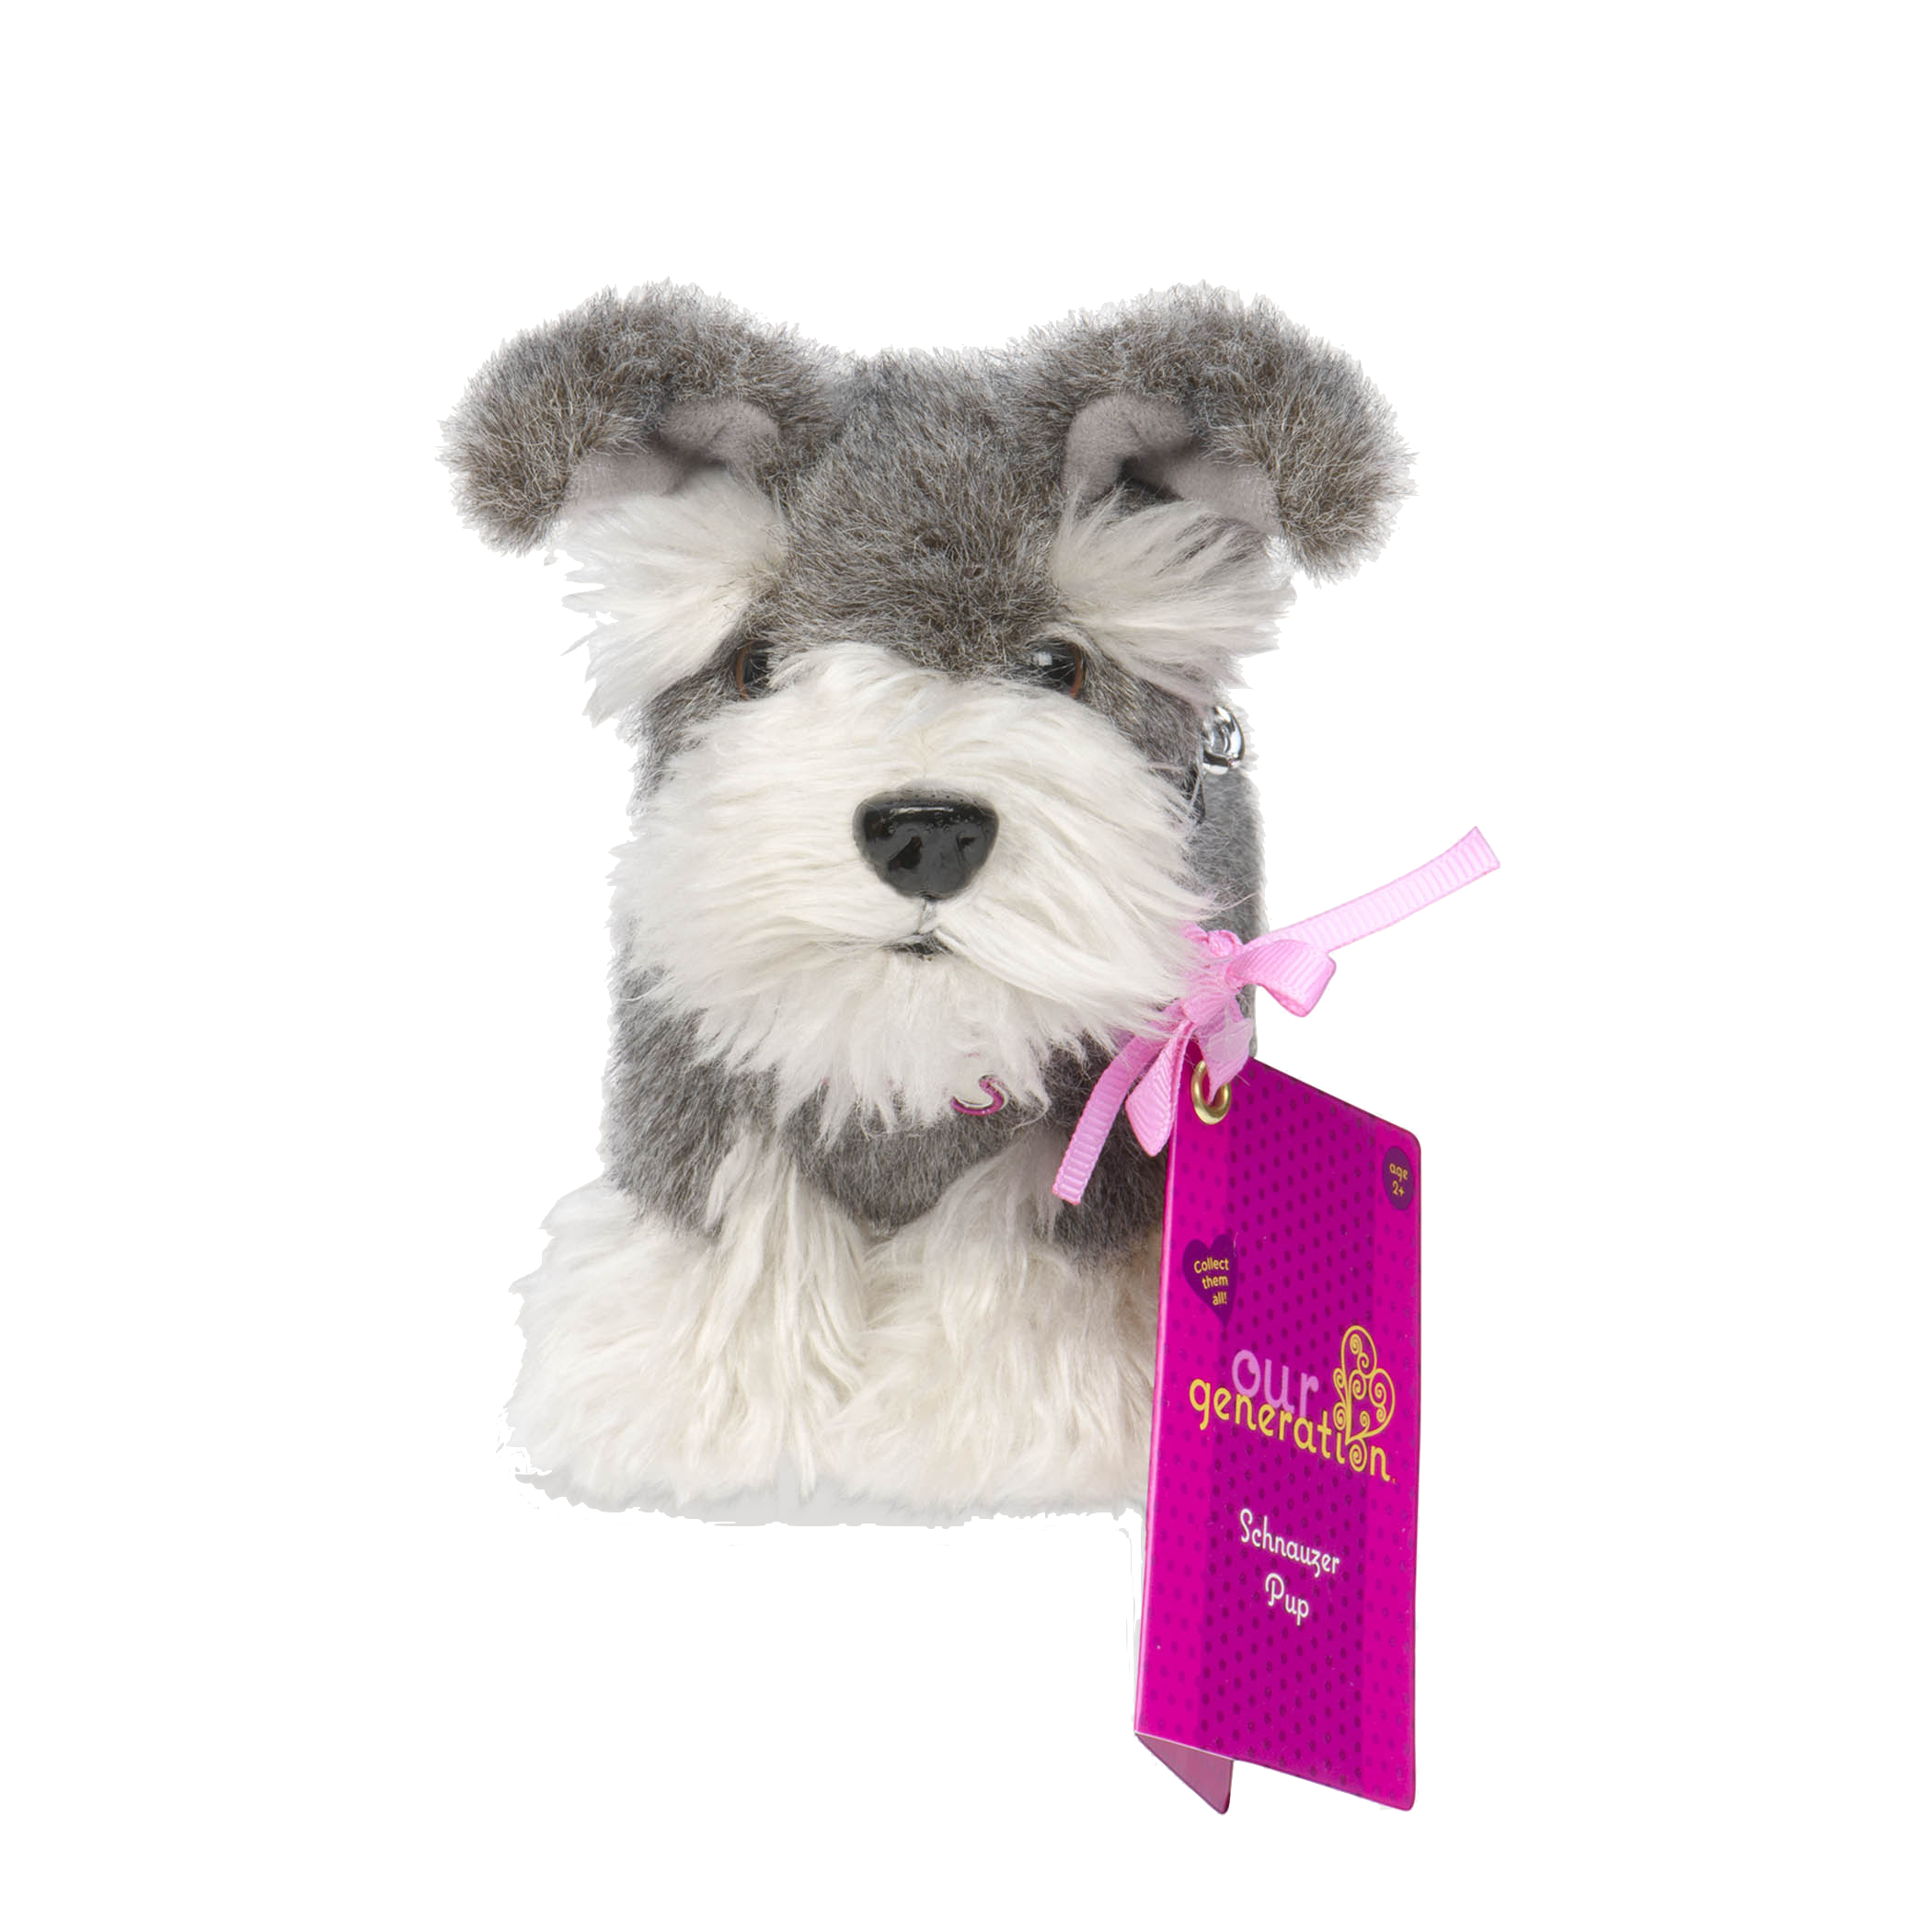 Schnauzer pup package01